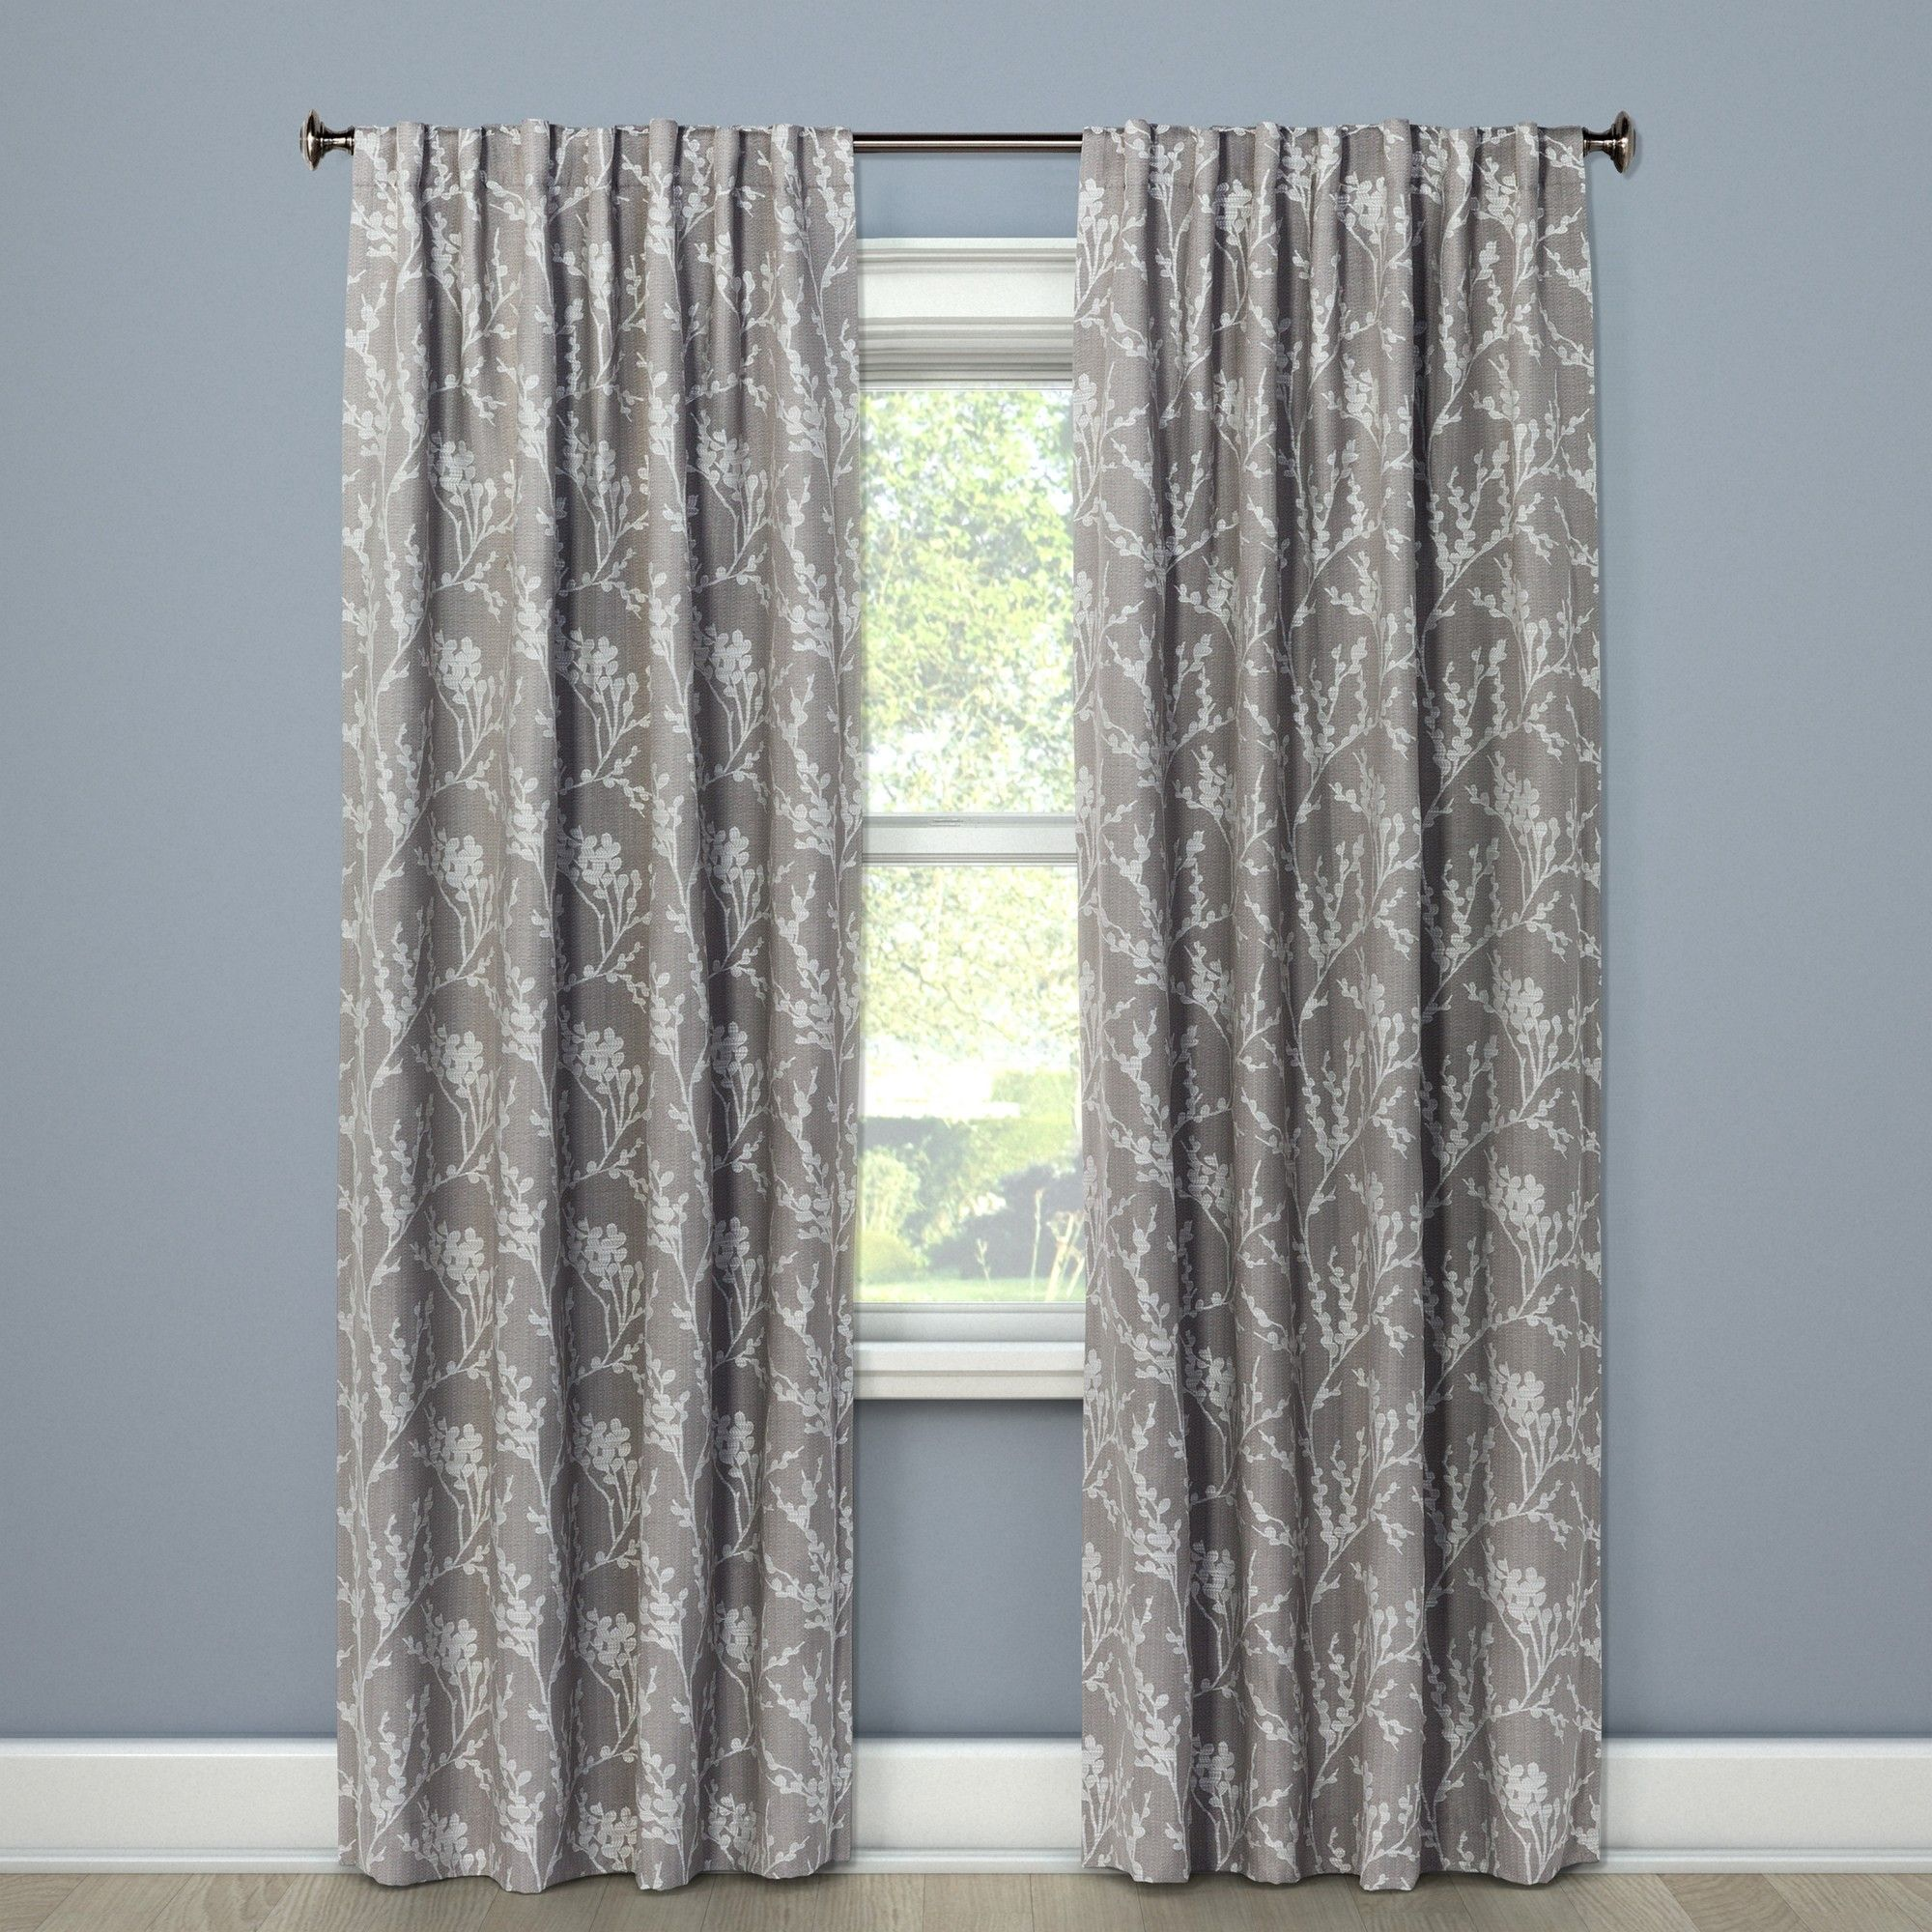 84 X50 Blackout Curtain Panel Gray Threshold Panel Curtains Curtains Blackout Curtains